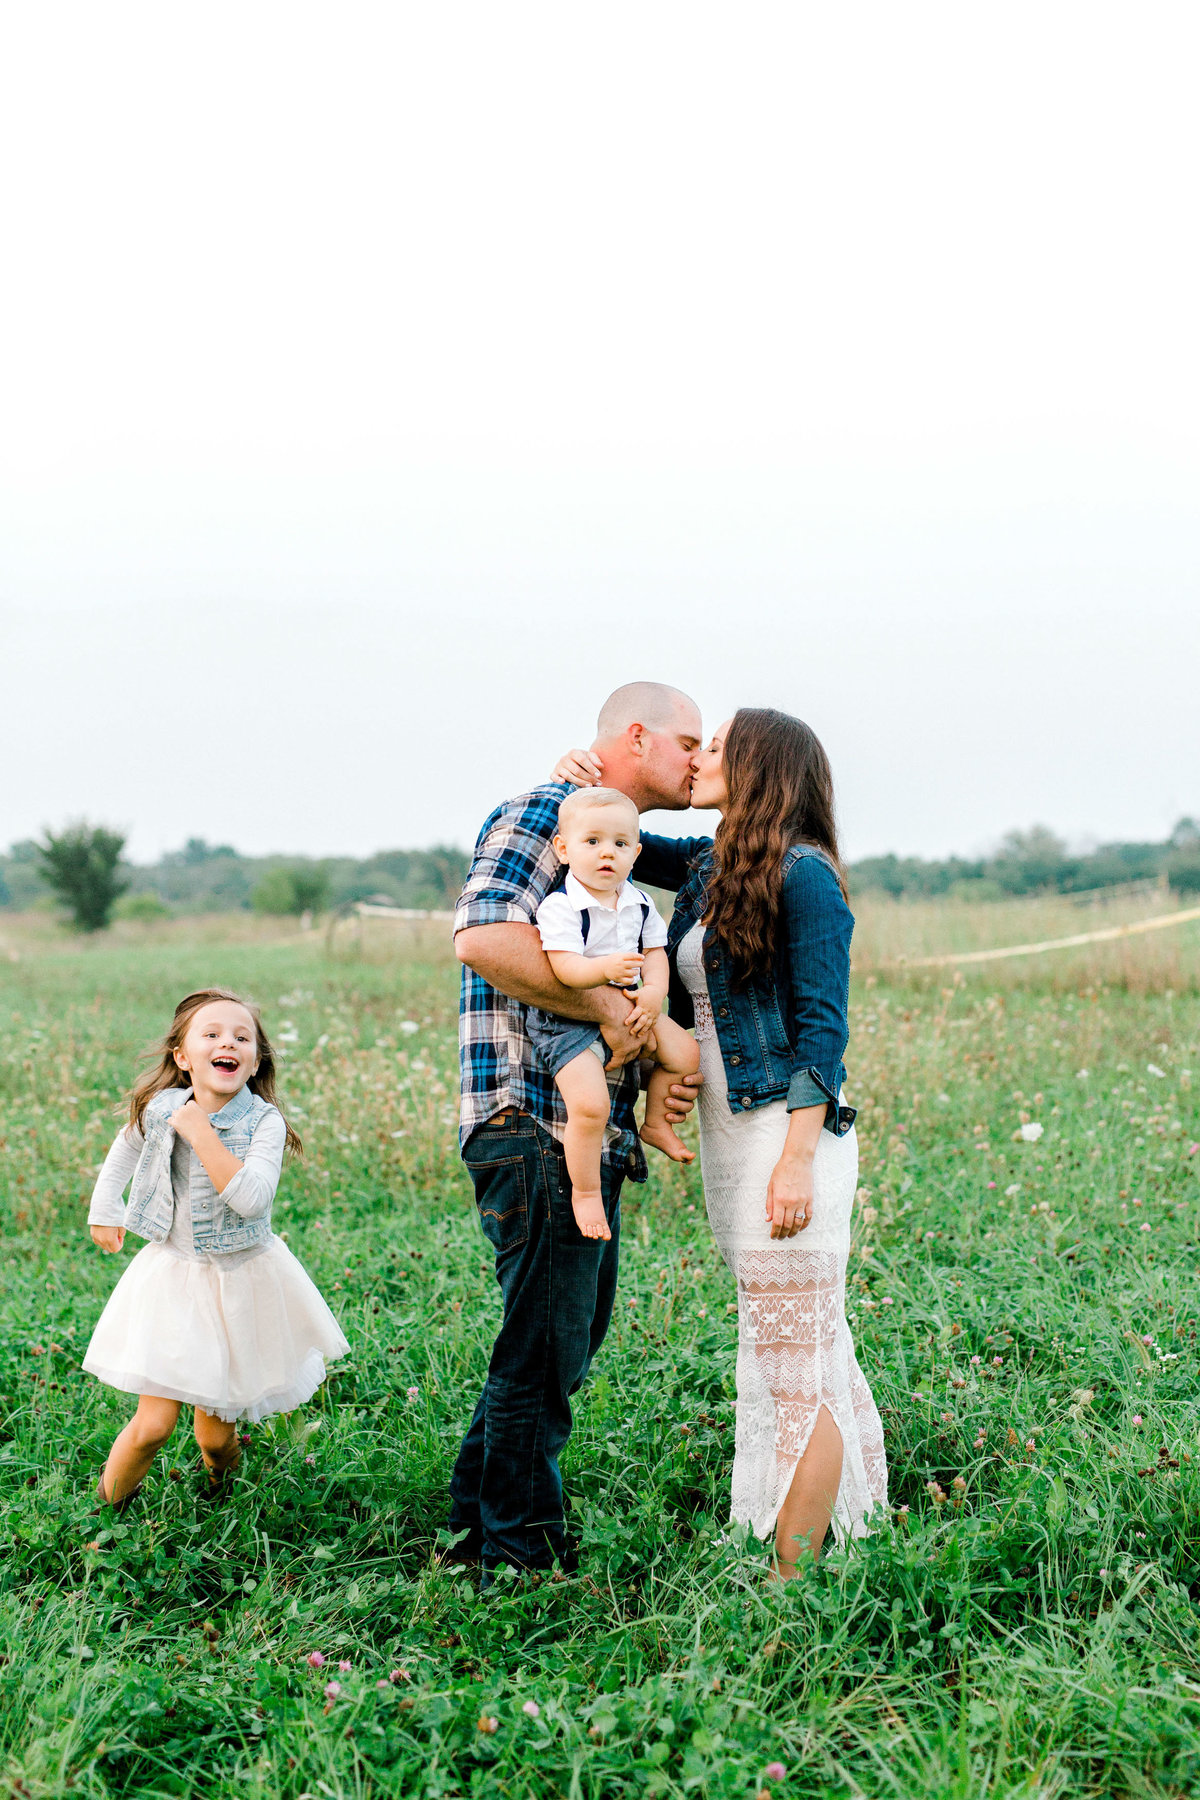 lmp-families-valparaiso-chicago-nwi-photographer-25